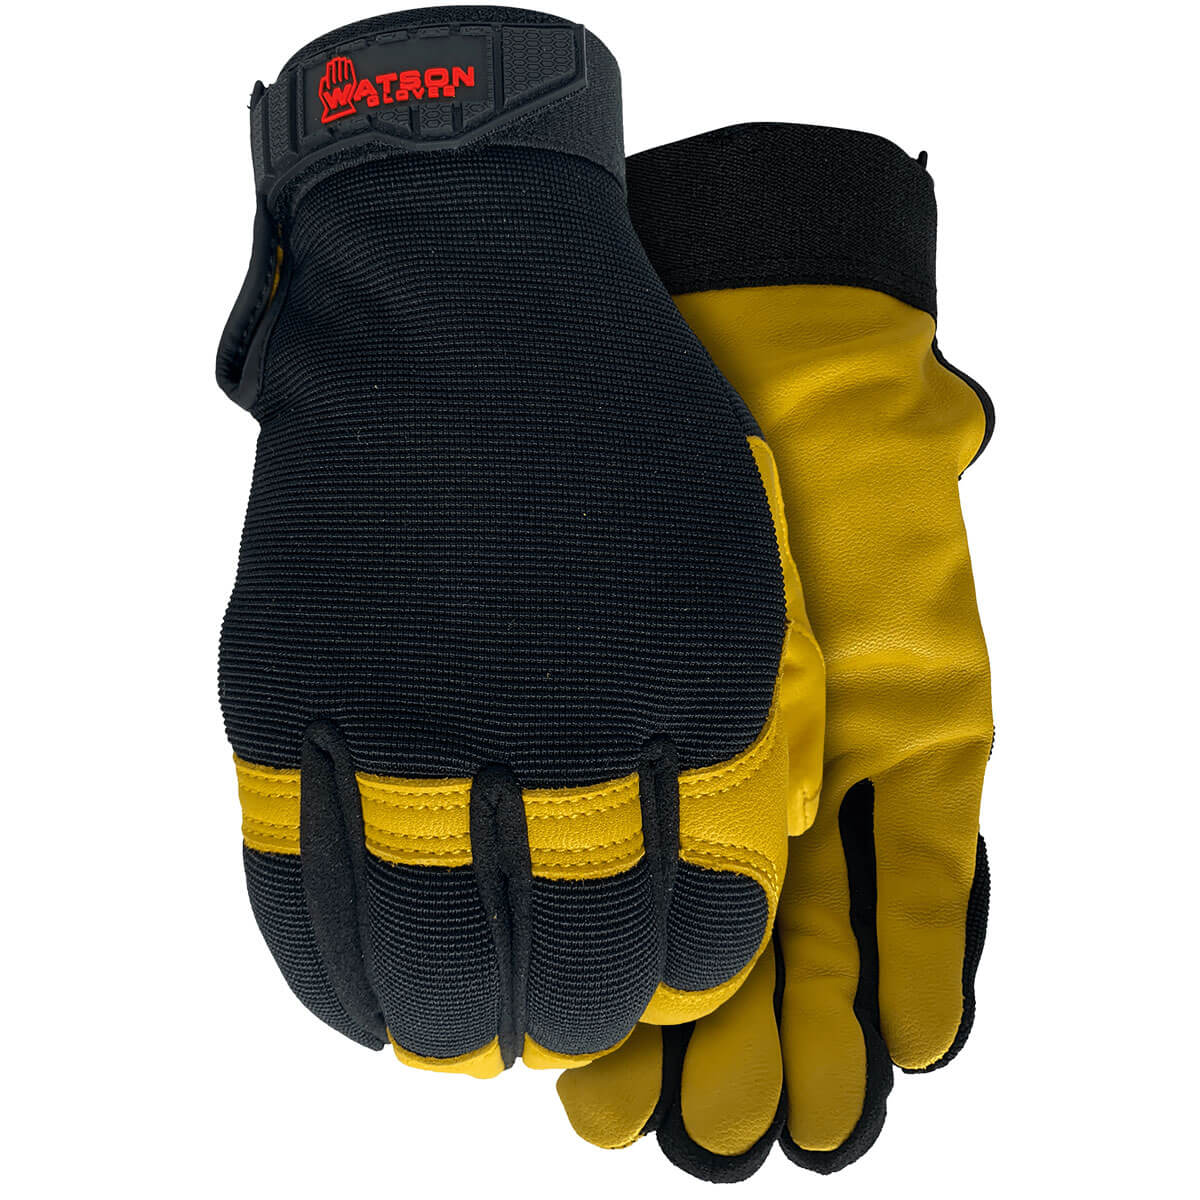 Cowboy Cuff Flextime Gloves